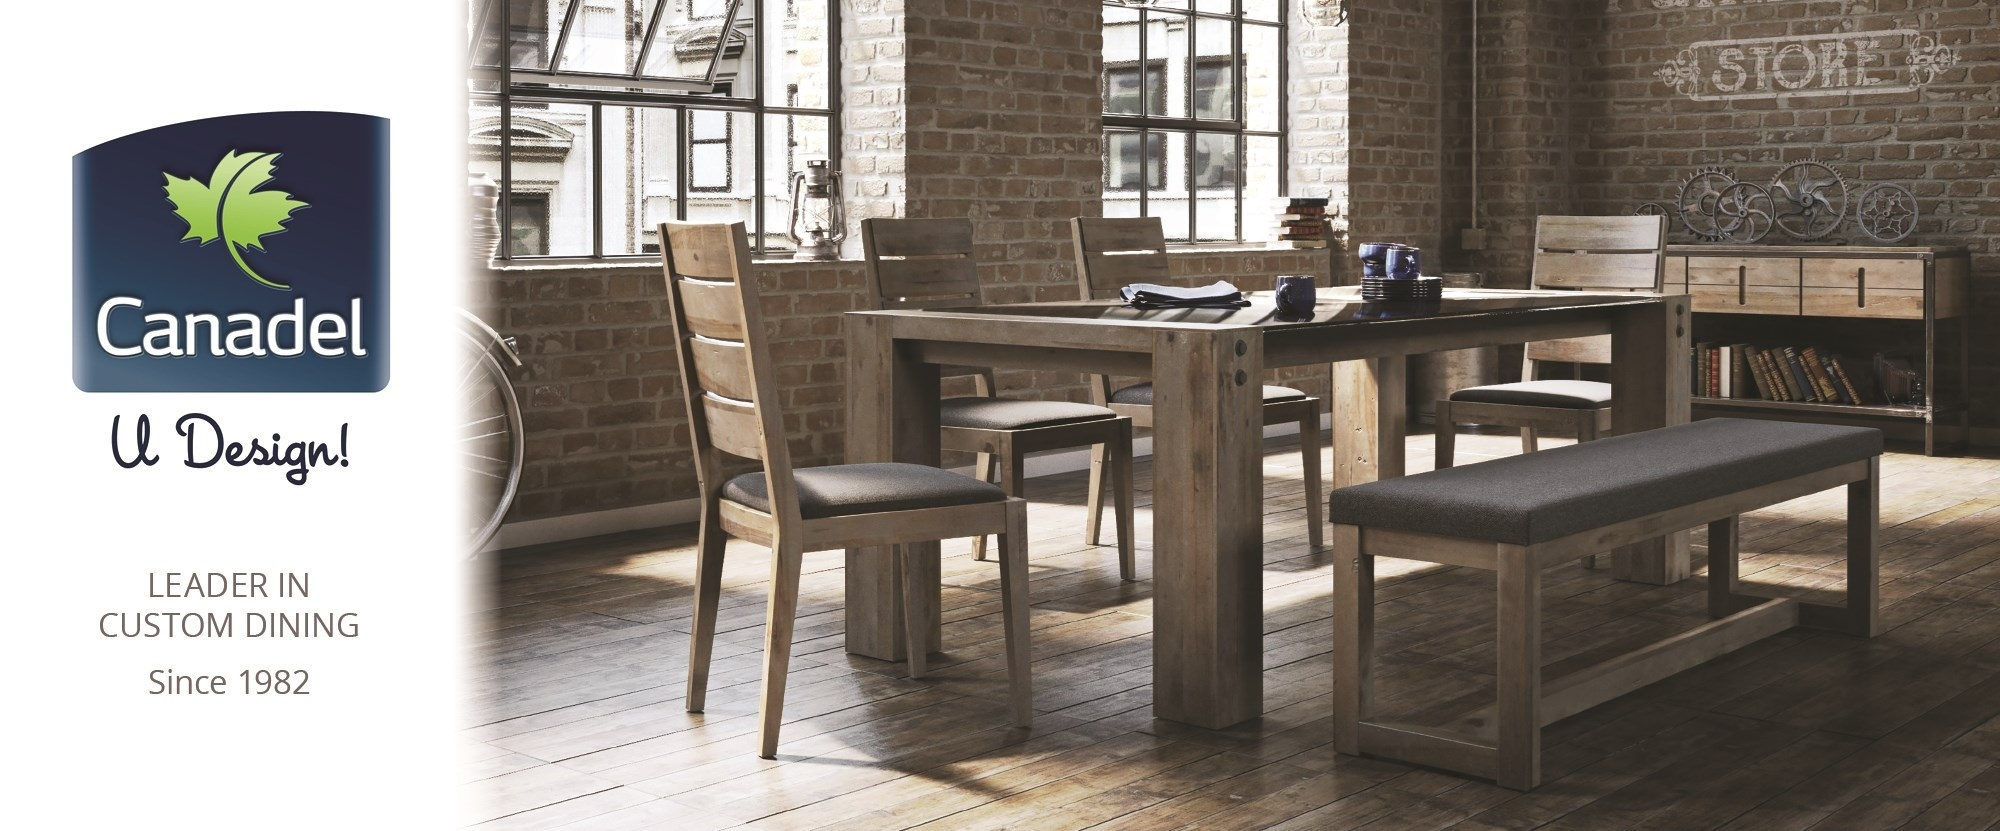 Canadel Custom Dining Furniture At Darvin Furniture – Orland Park Throughout Current Market 6 Piece Dining Sets With Host And Side Chairs (View 6 of 20)